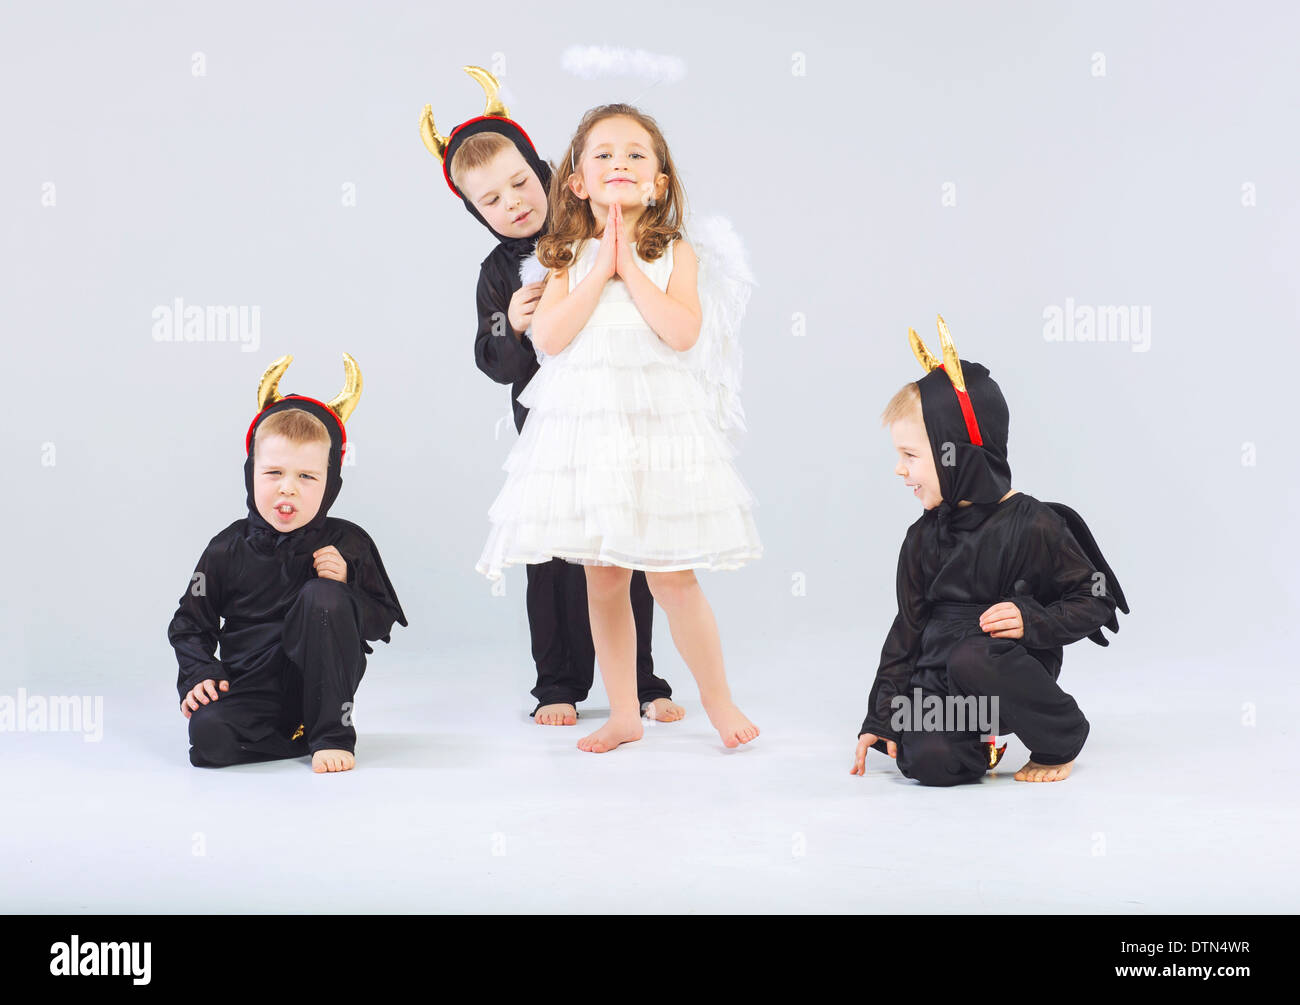 Little angel and three cute devils - Stock Image